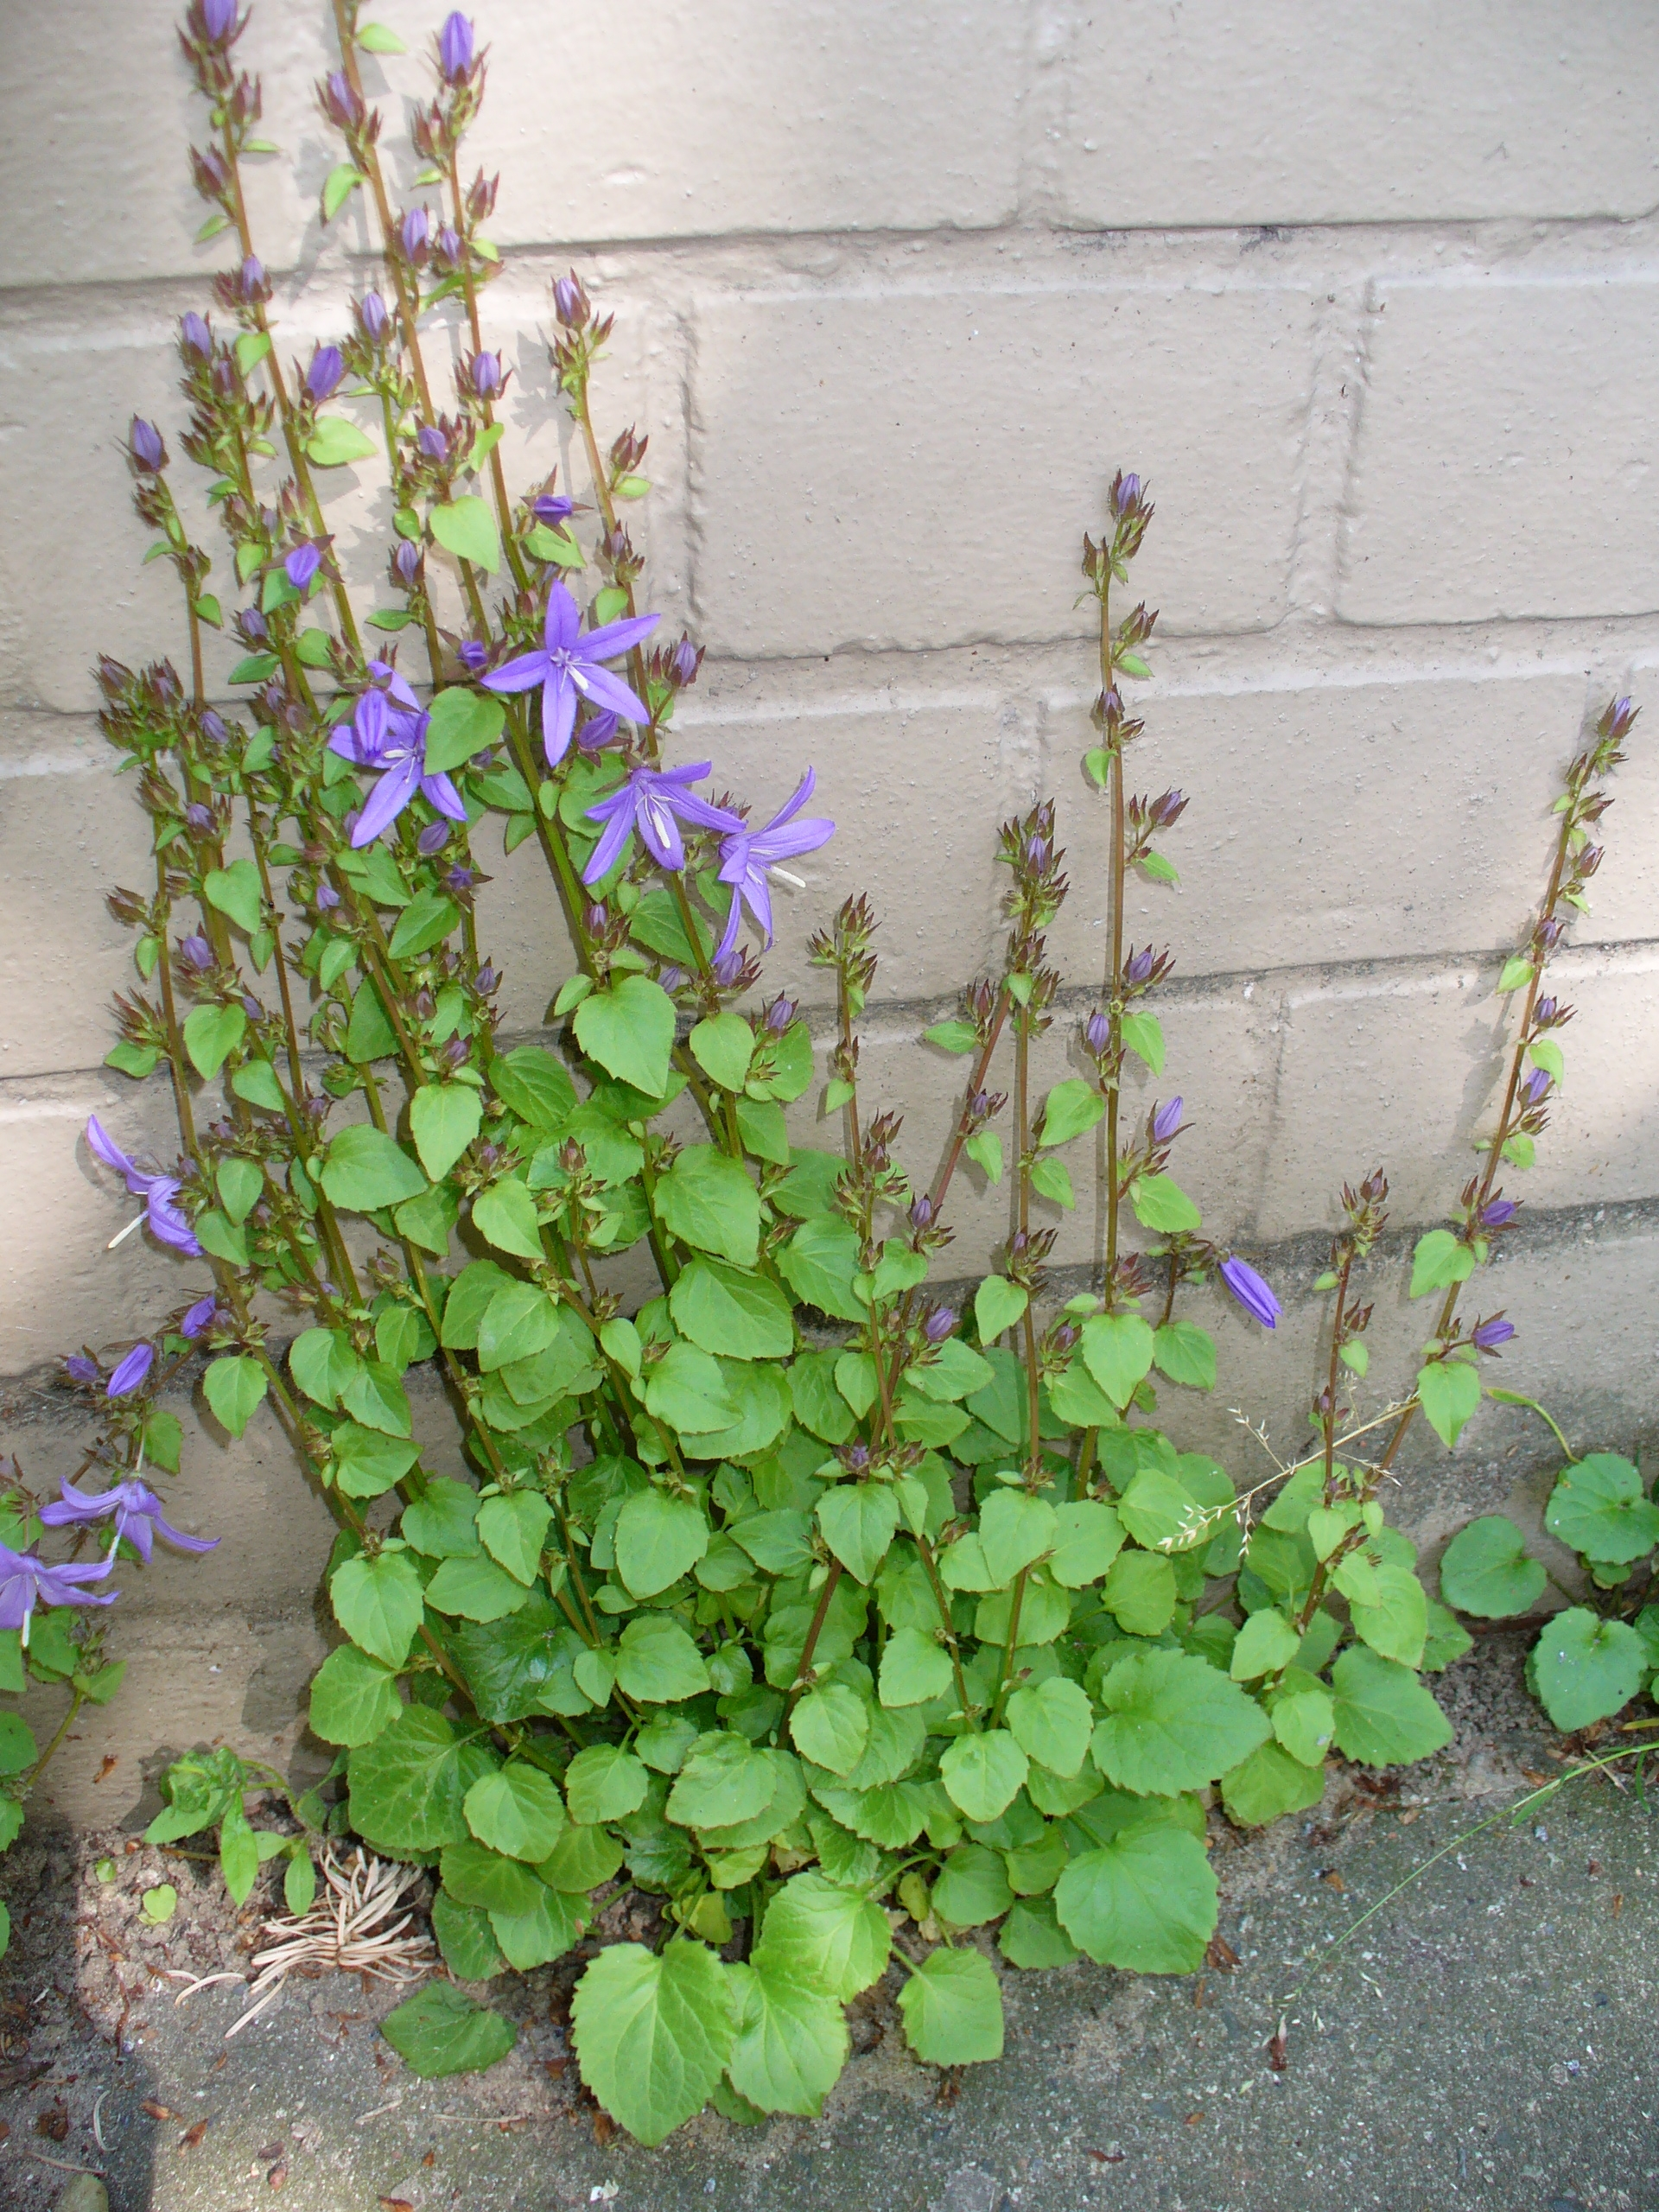 http://upload.wikimedia.org/wikipedia/commons/1/14/Campanula_poscharskyana_1.JPG